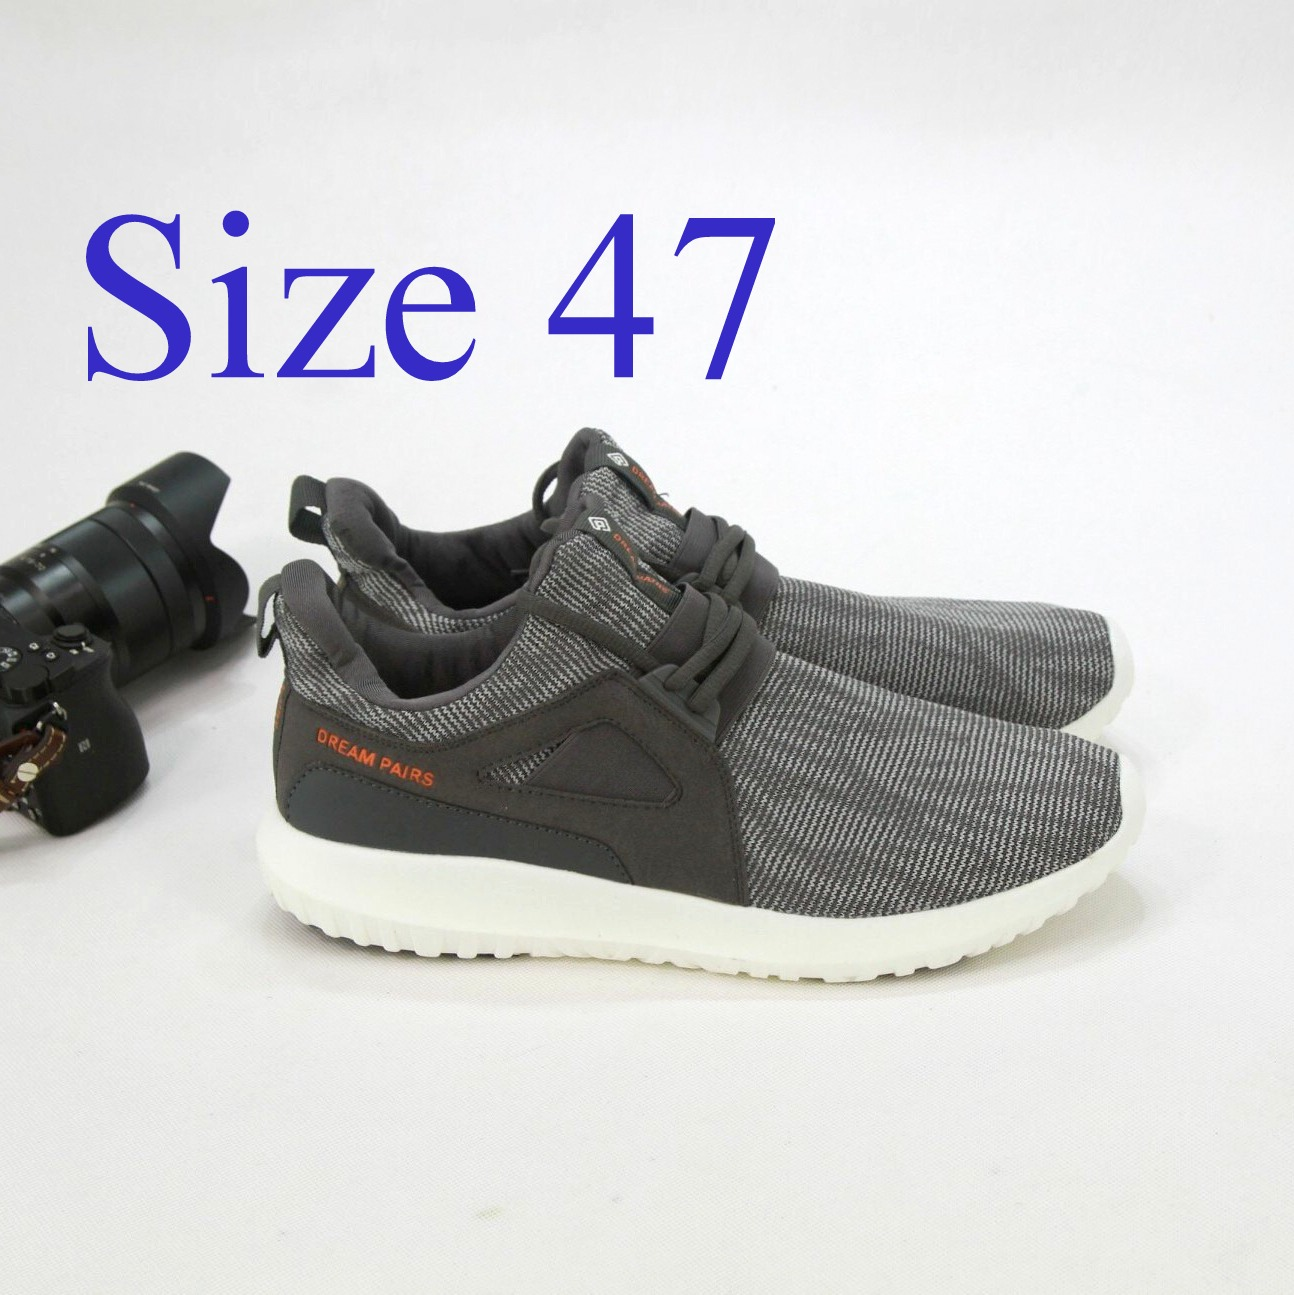 Giày size 47 - Shoes size 47